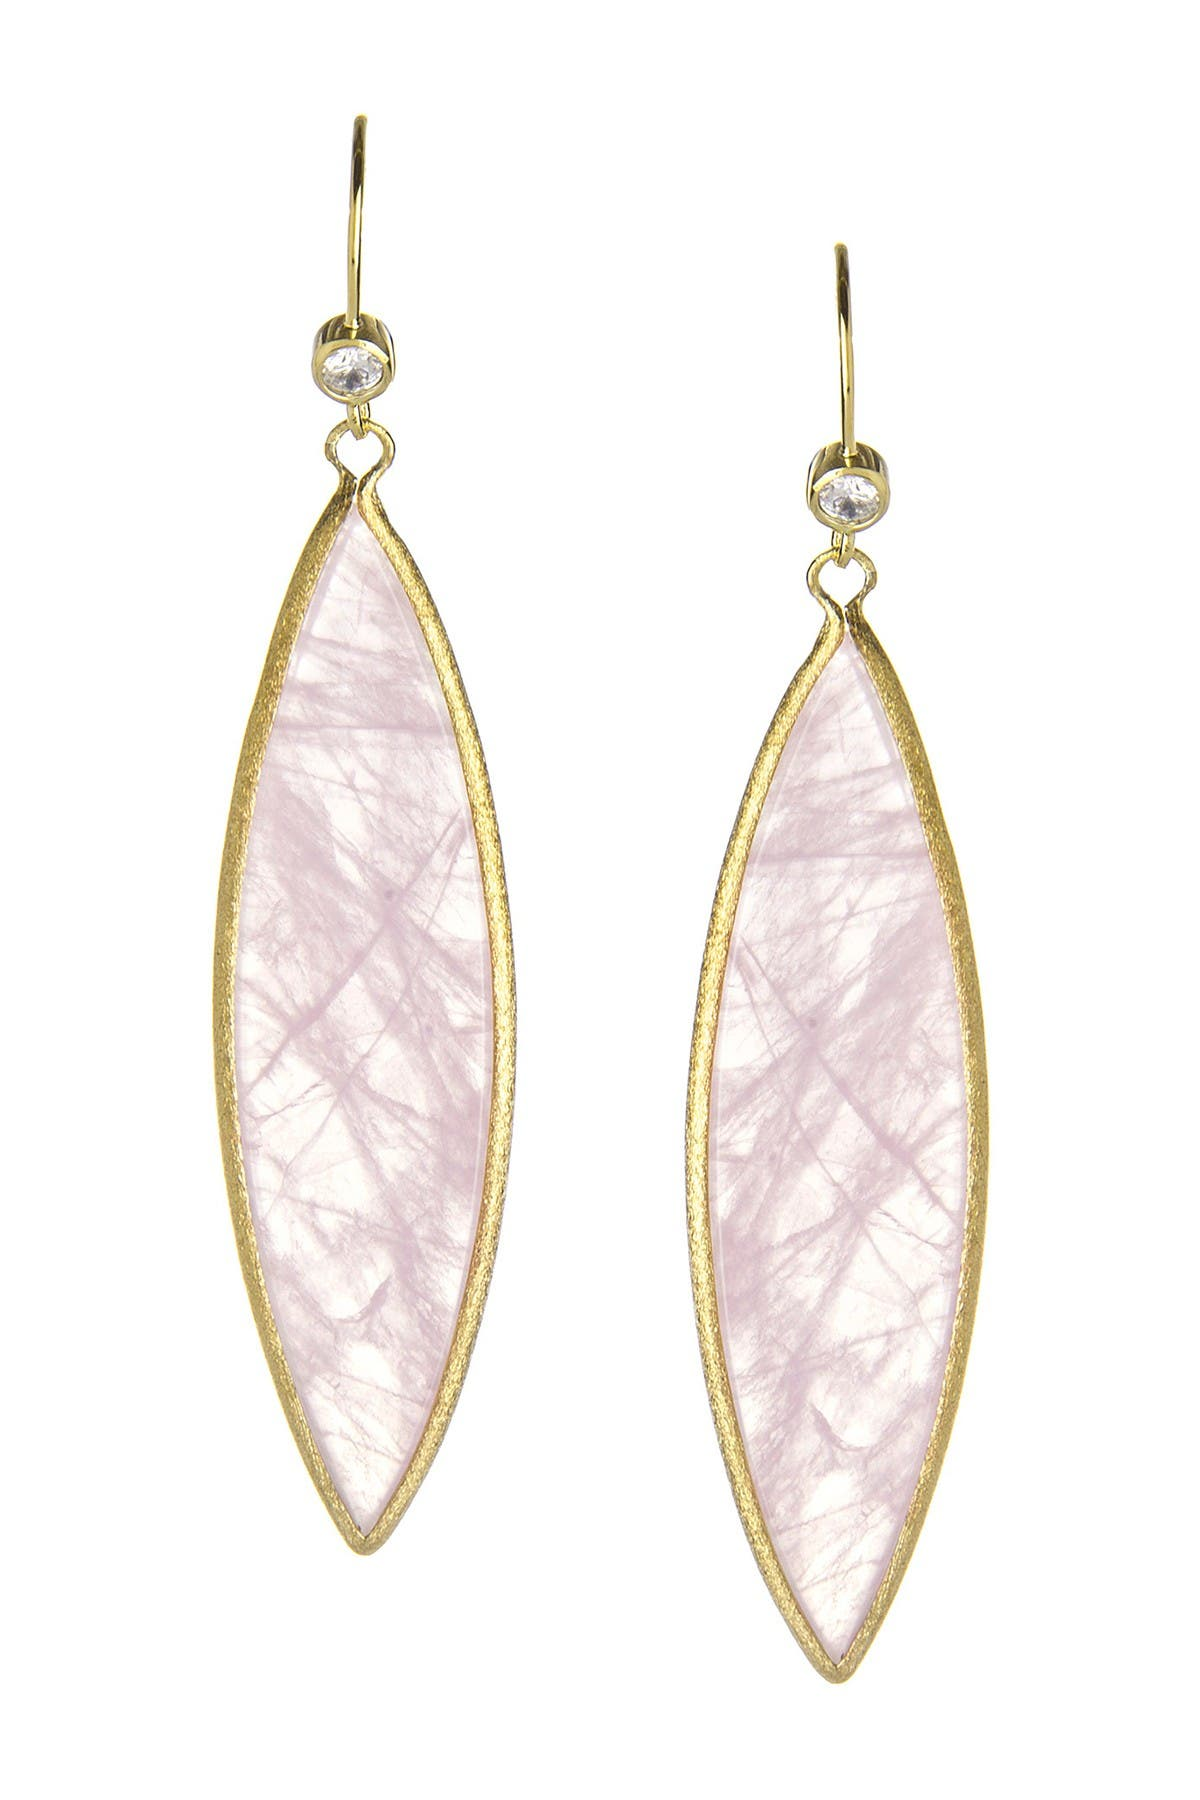 Image of Rivka Friedman Elongated Rose Quartz Marquis Drop Earrings